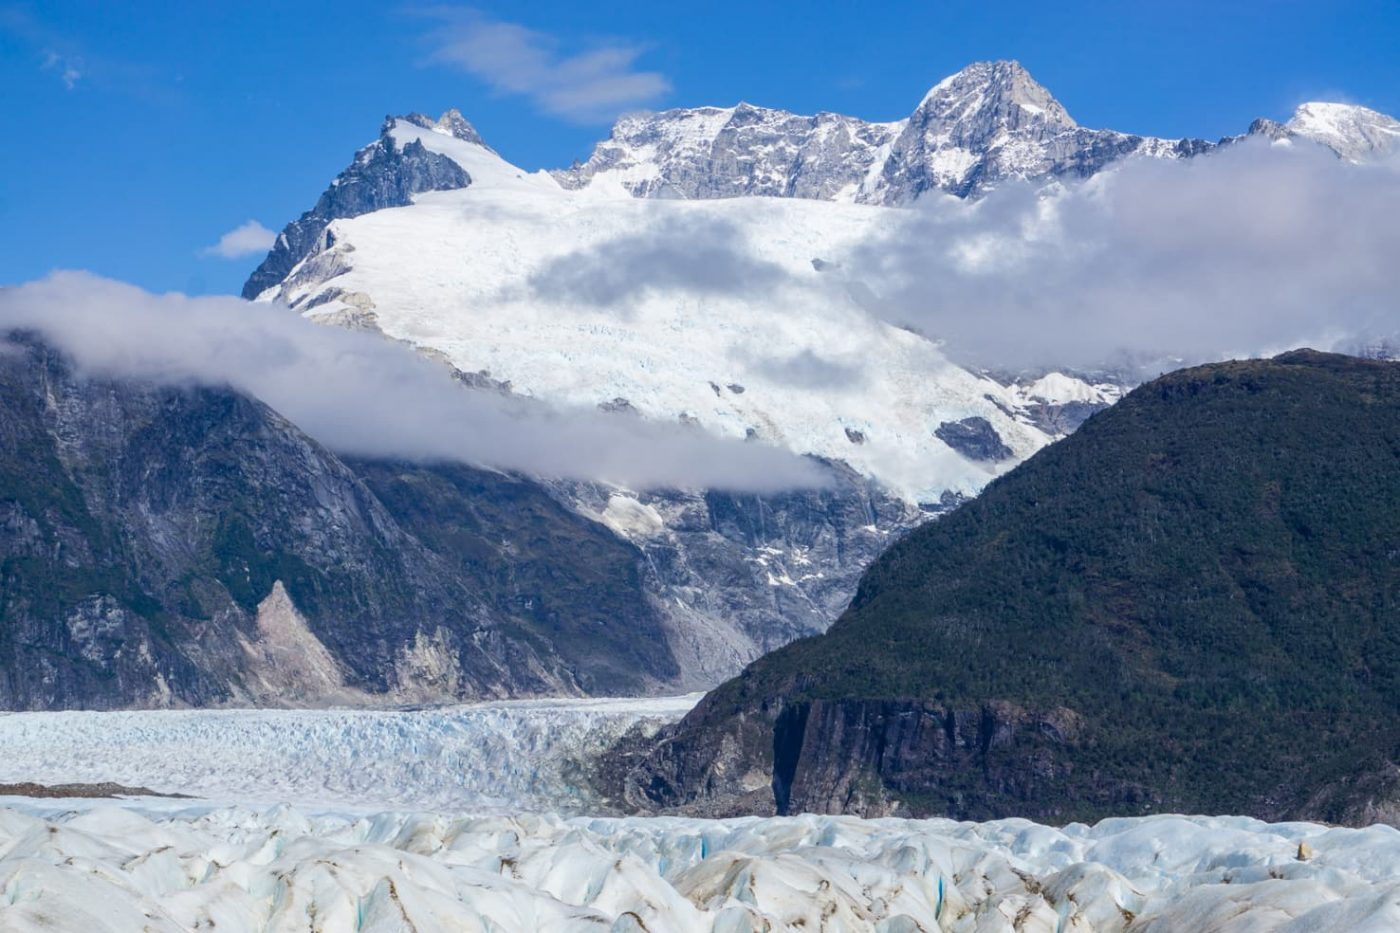 Exploradores Glacier, Chile. Patagonia, Chile Contributed by Maya from Travel with a Smile